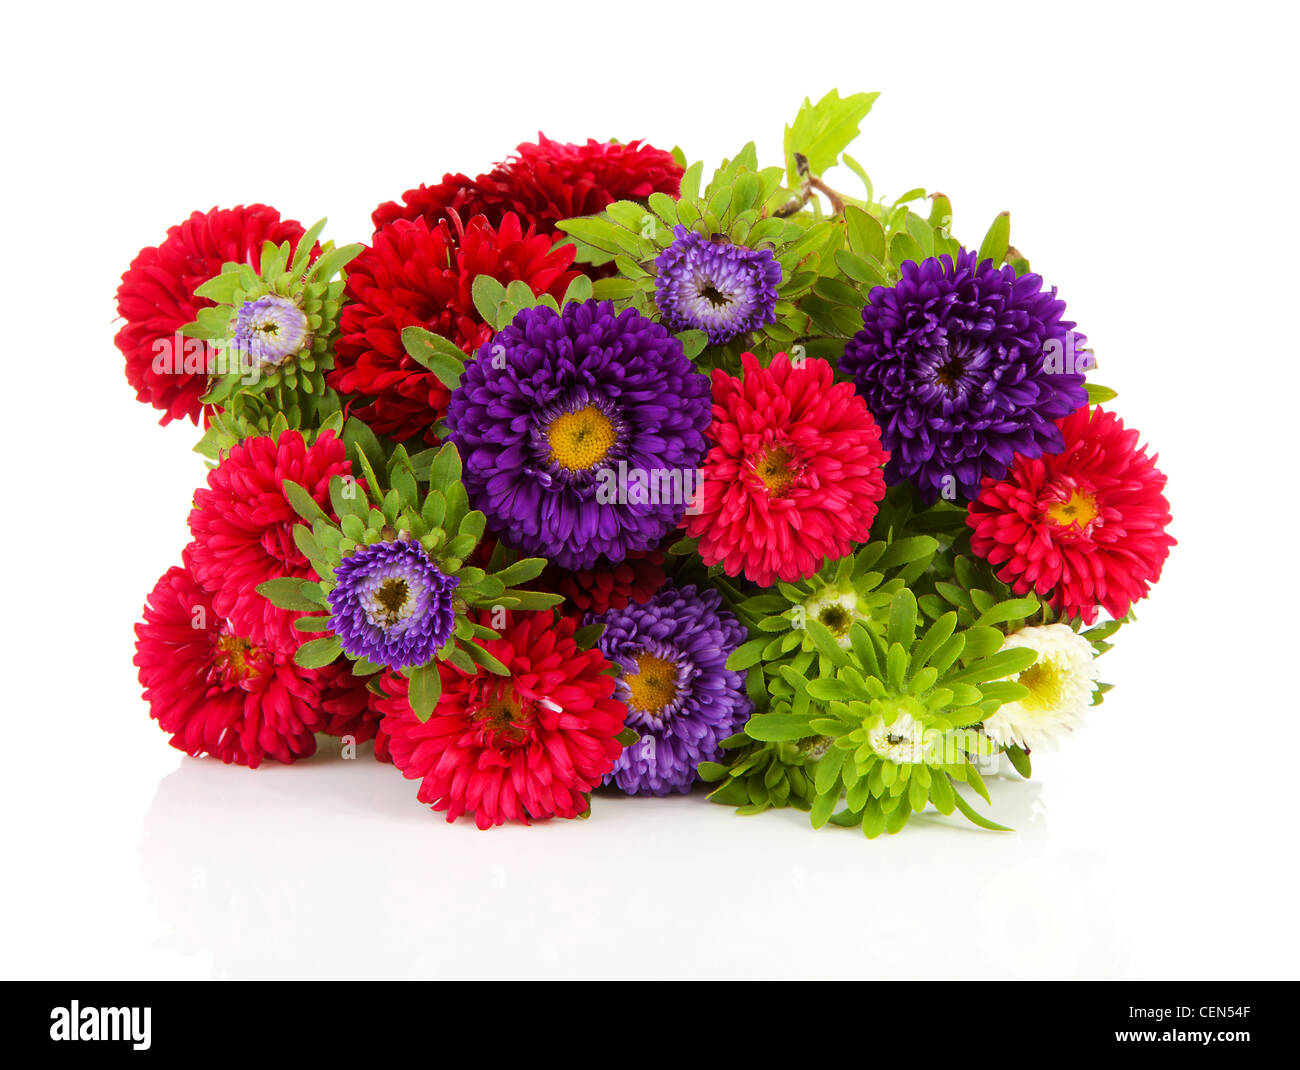 White Asters Stock Photos & White Asters Stock Images - Alamy